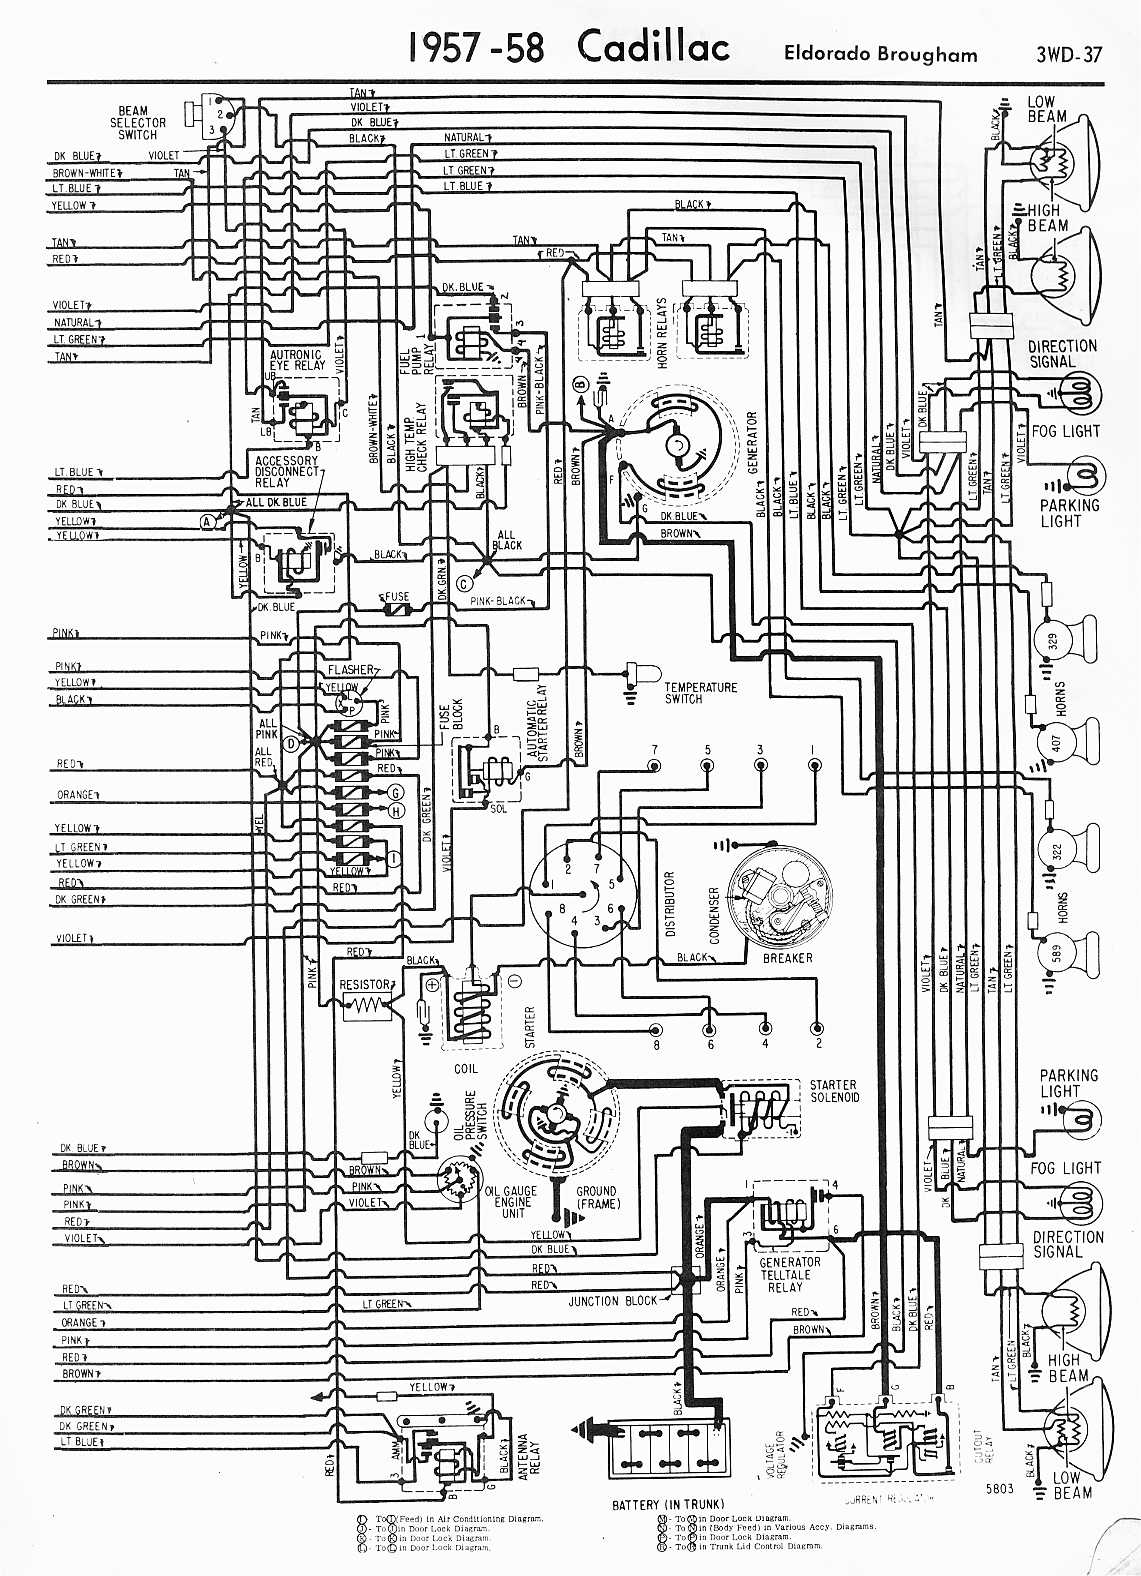 MWireCadi65_3WD 037 1999 cadillac deville starter wiring wiring diagram simonand 1957 chevrolet wiring diagram at gsmx.co